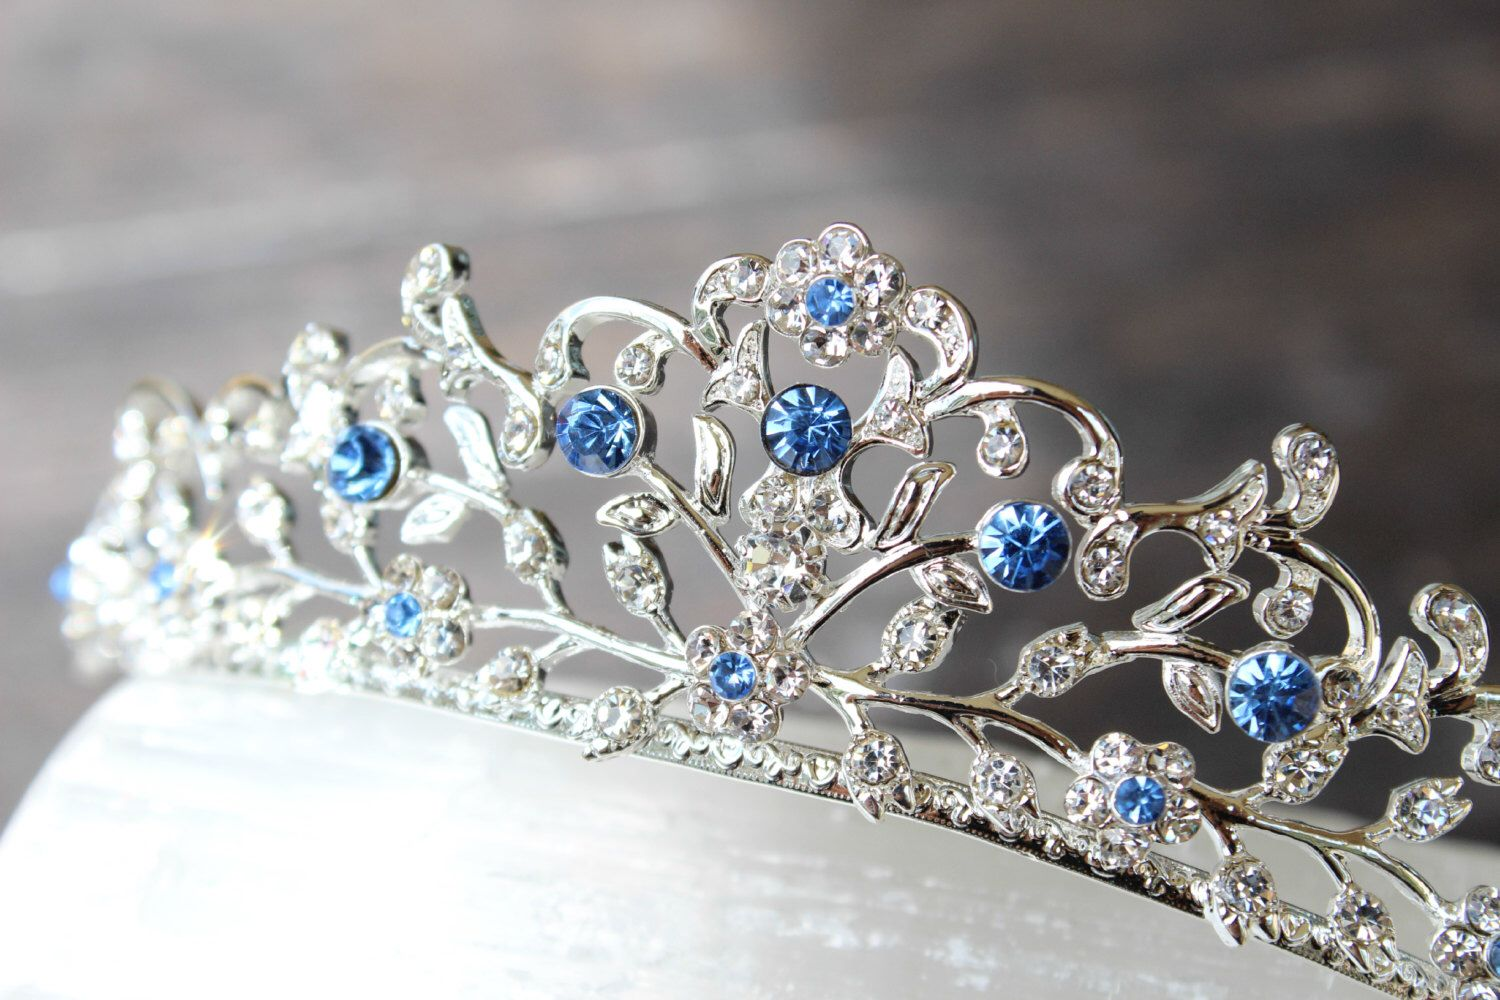 Pin By Heidi Clay On If I Went To A Ball Pinterest Bridal Tiara